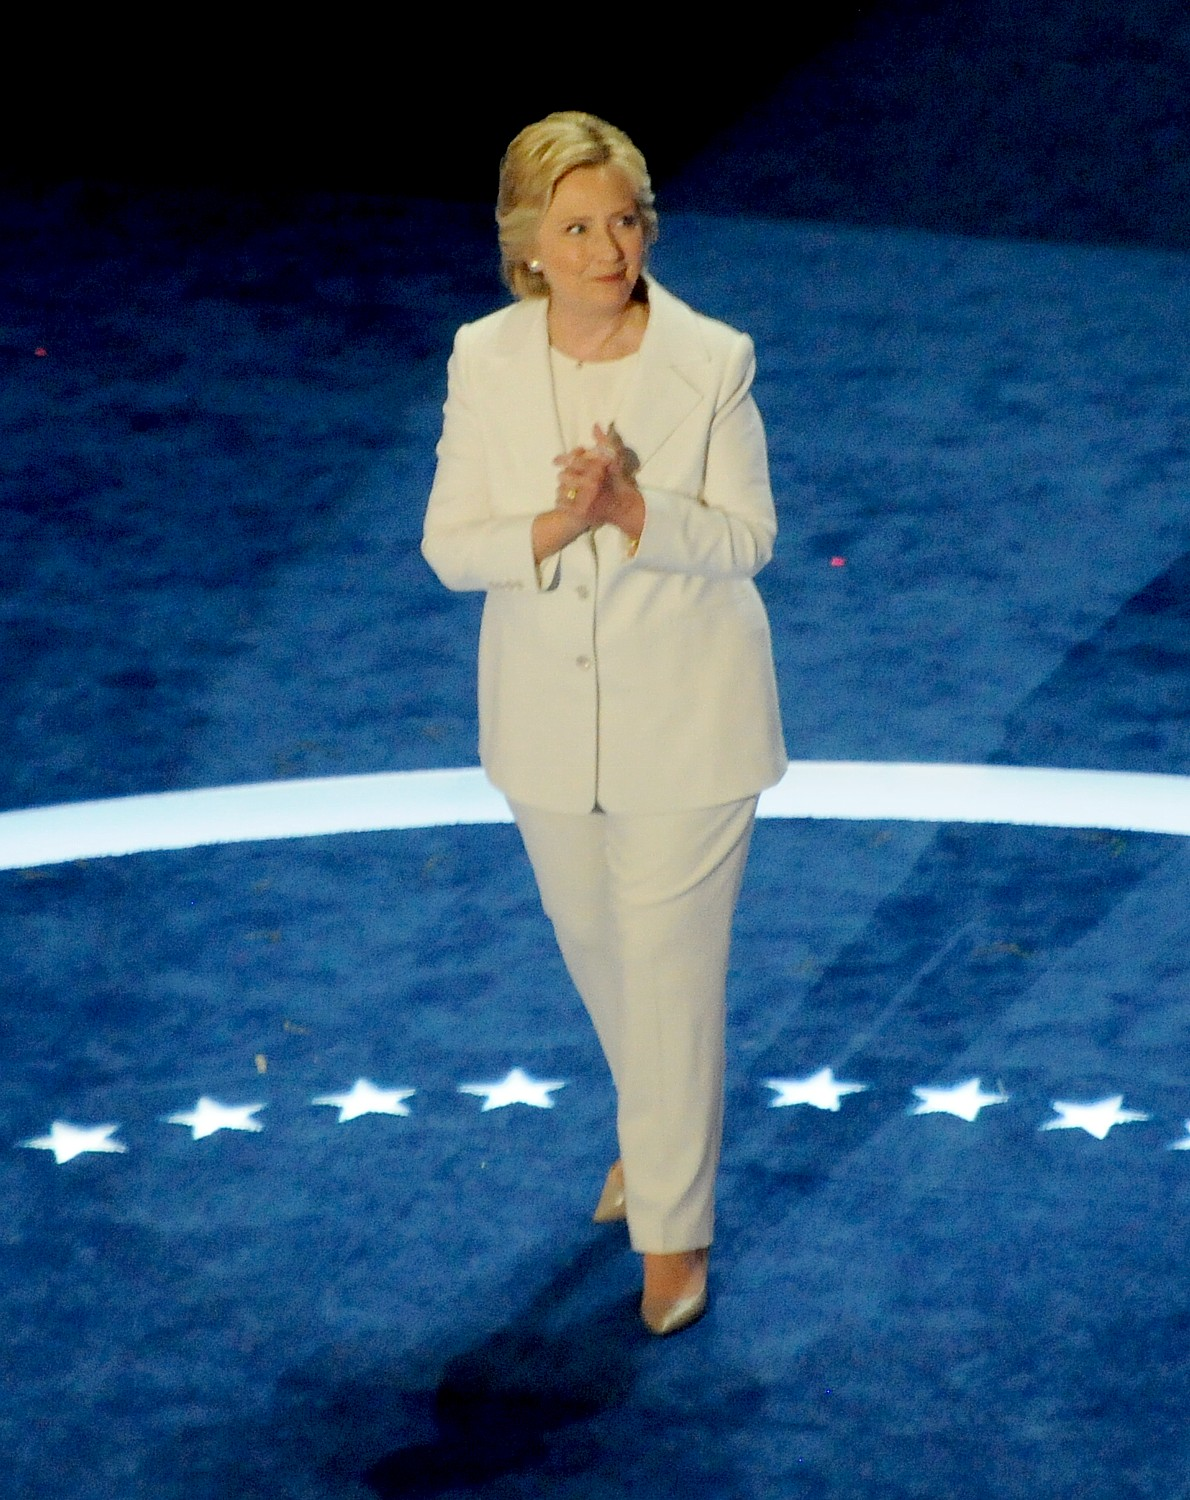 Historic nomination of Hillary Rodham Clinton for President by Democratic party, at Democratic National Convention in Philadelphia, July 2016.